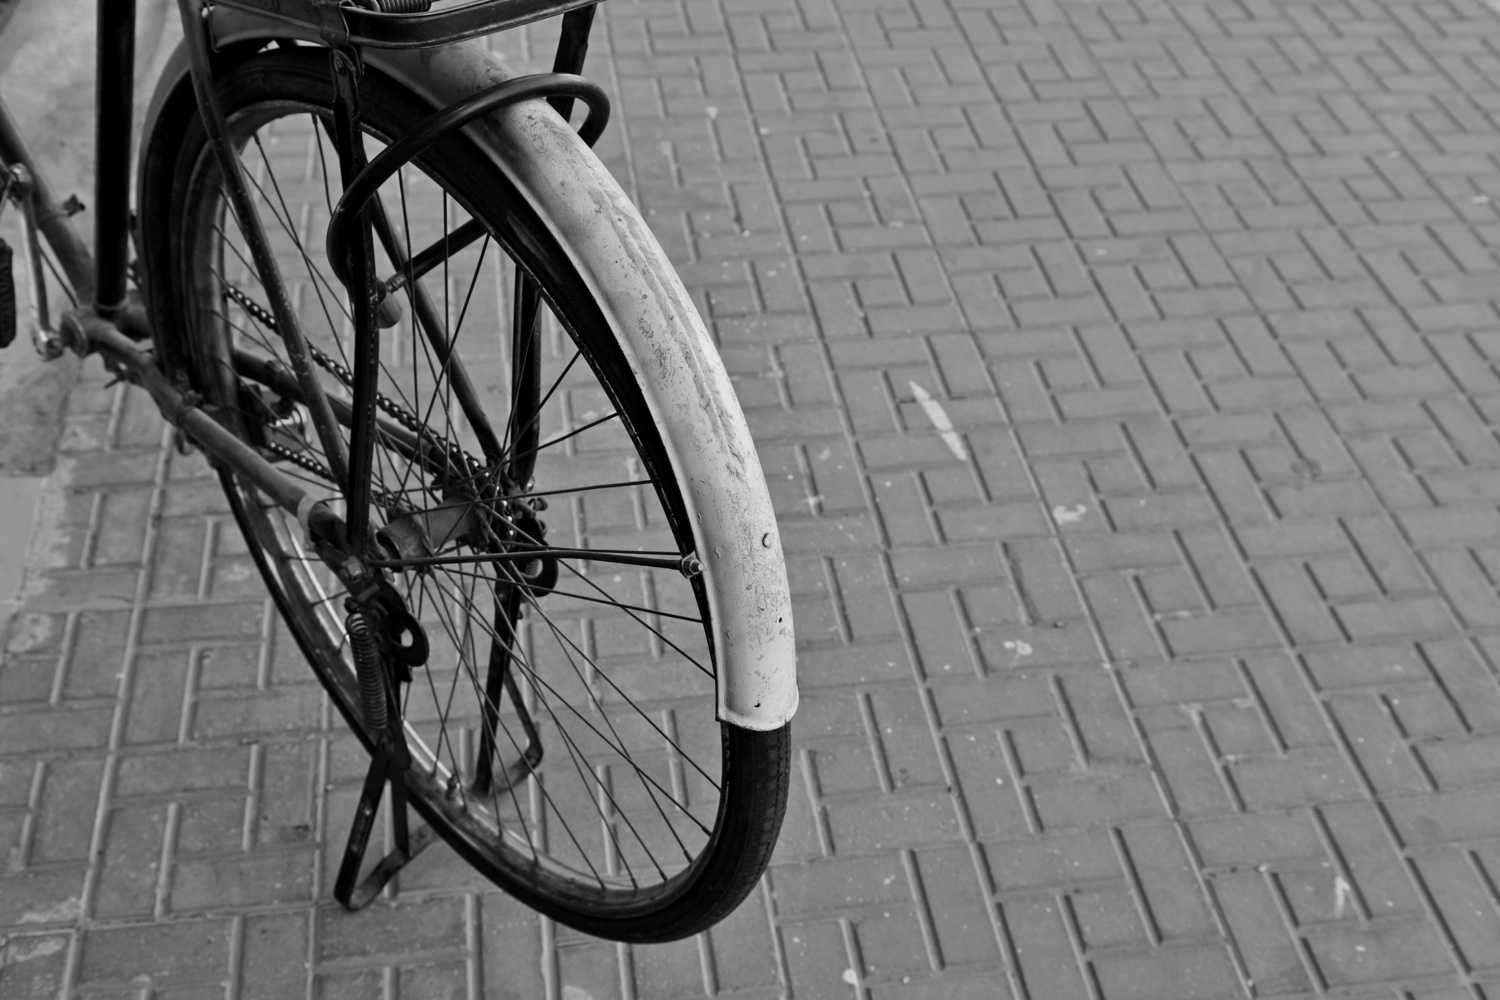 Old retro styled Bicycle in the street by Savvas Stavrinos